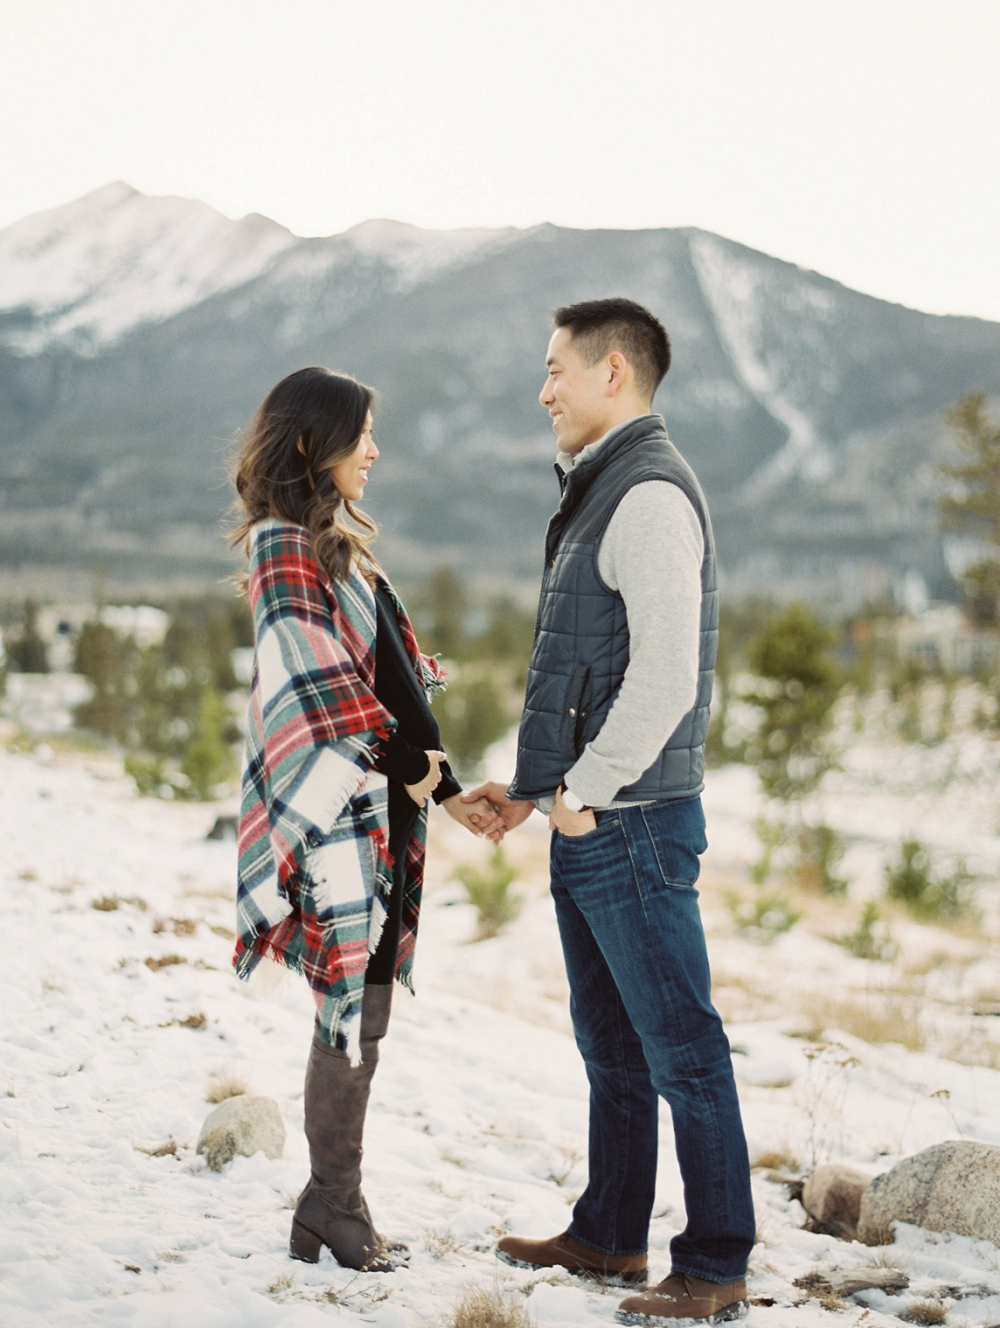 Dani-Cowan-Photography-Snowy-Colorado-Mountain-Maternity-Photoshoot16_WEB